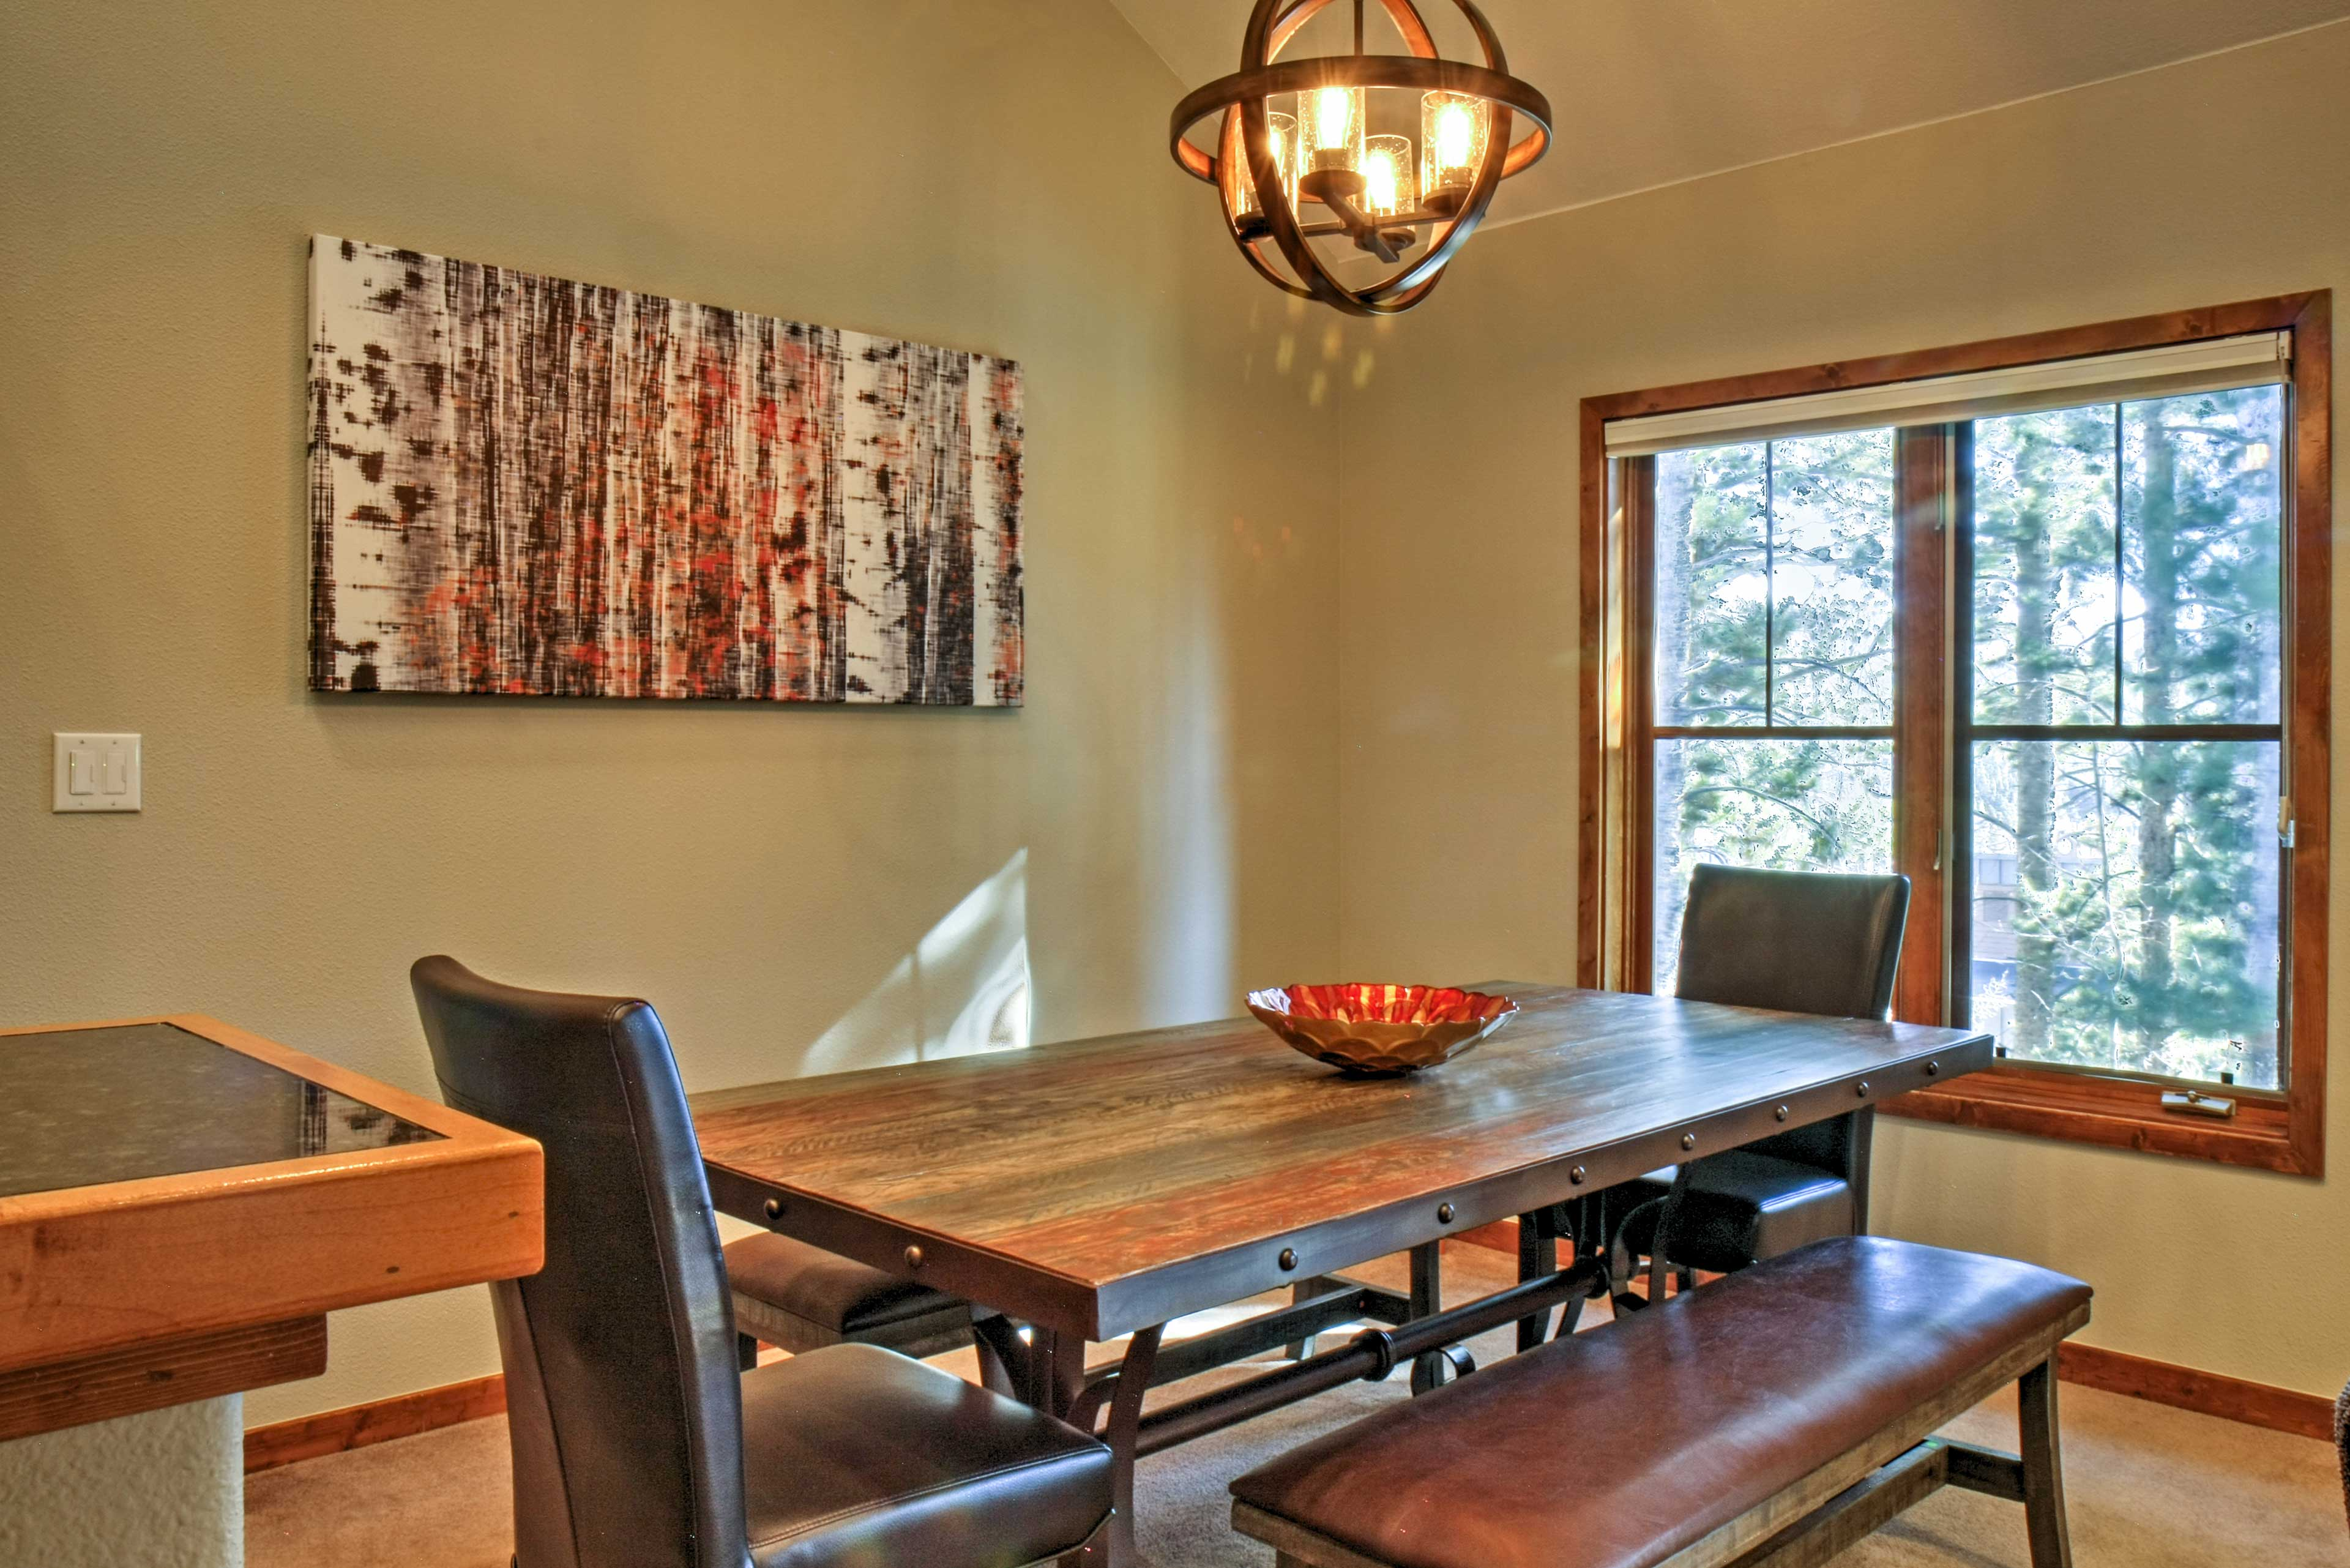 Share a meal at this rustic dining room table with seating for 8.